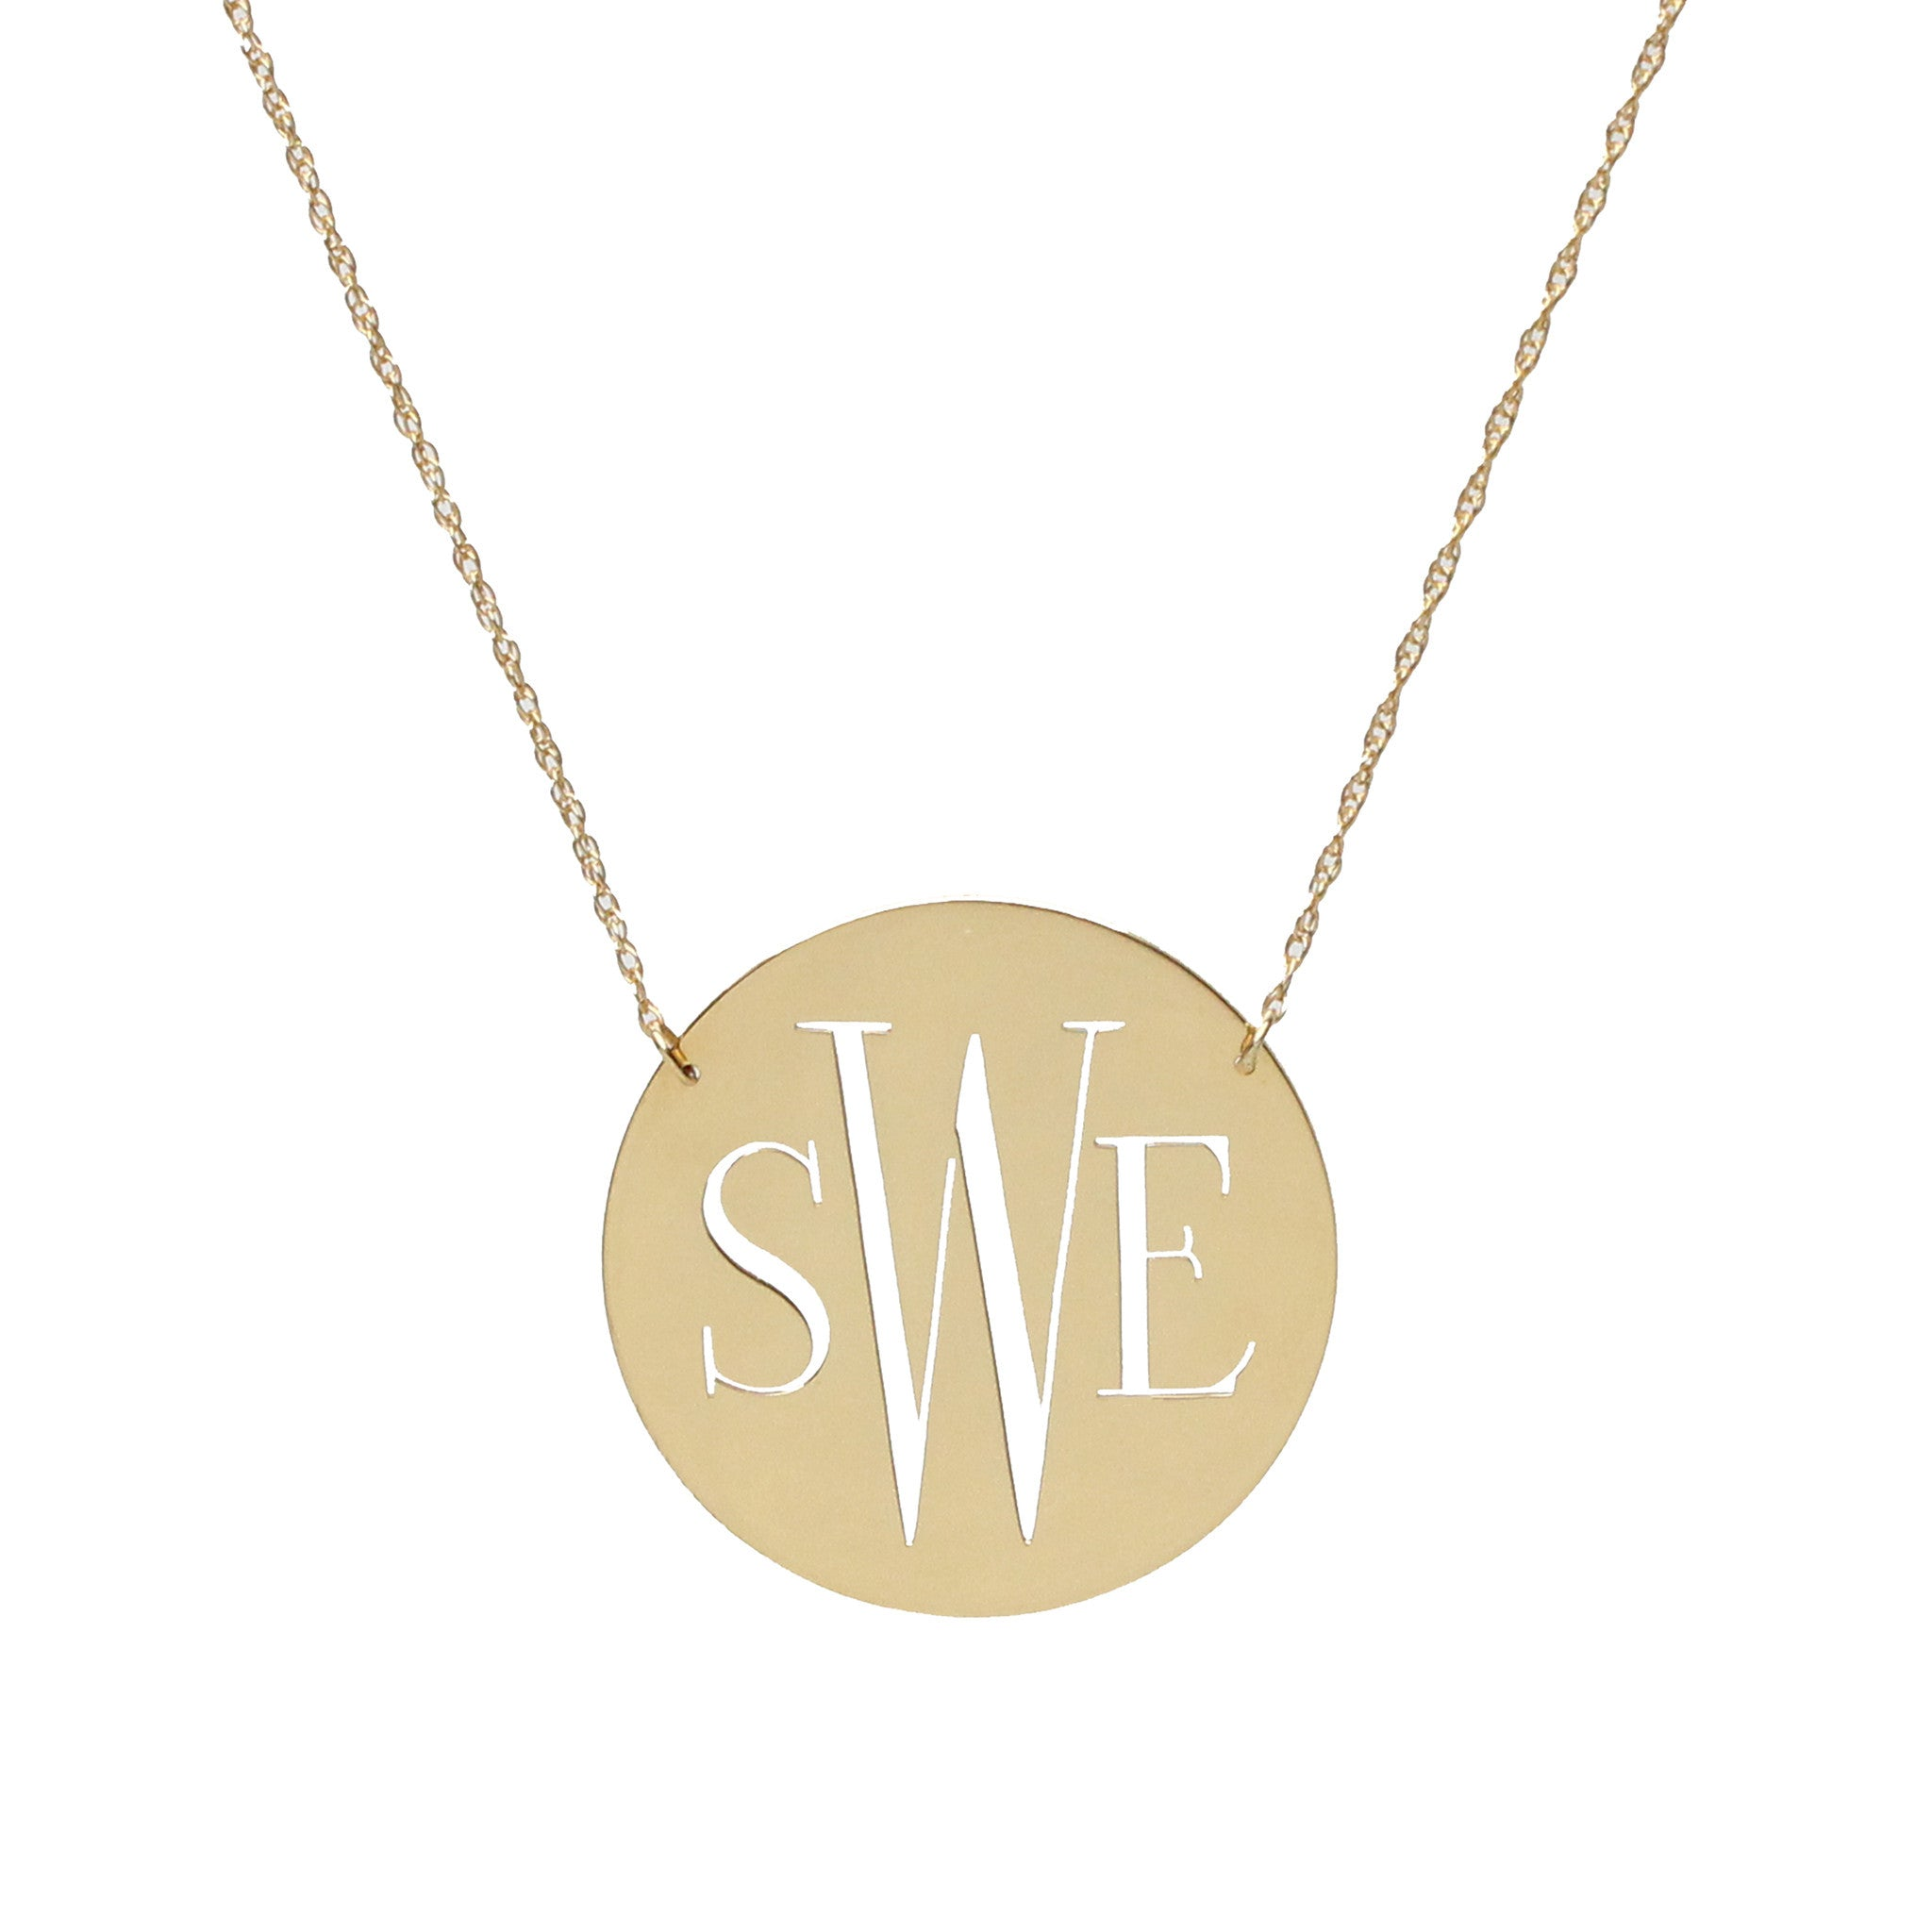 gold original by necklace product double pearson side solid lindsay mini disc sided initial lindsaypearson